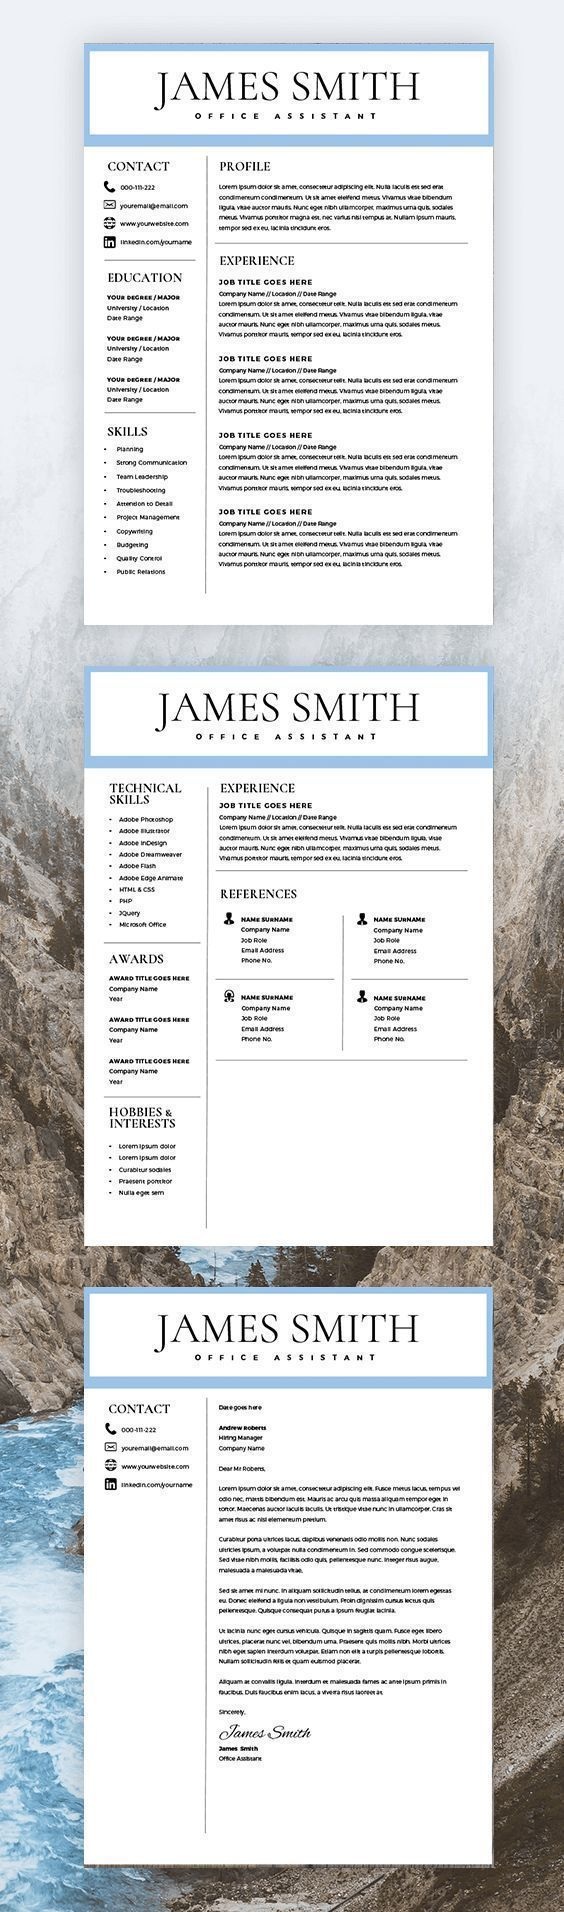 Resume Template for Men - Writer Resume Template for Word & Pages - 2 Pages Resume - Cover Letter - Curriculum Vitae - Instant Download - CV